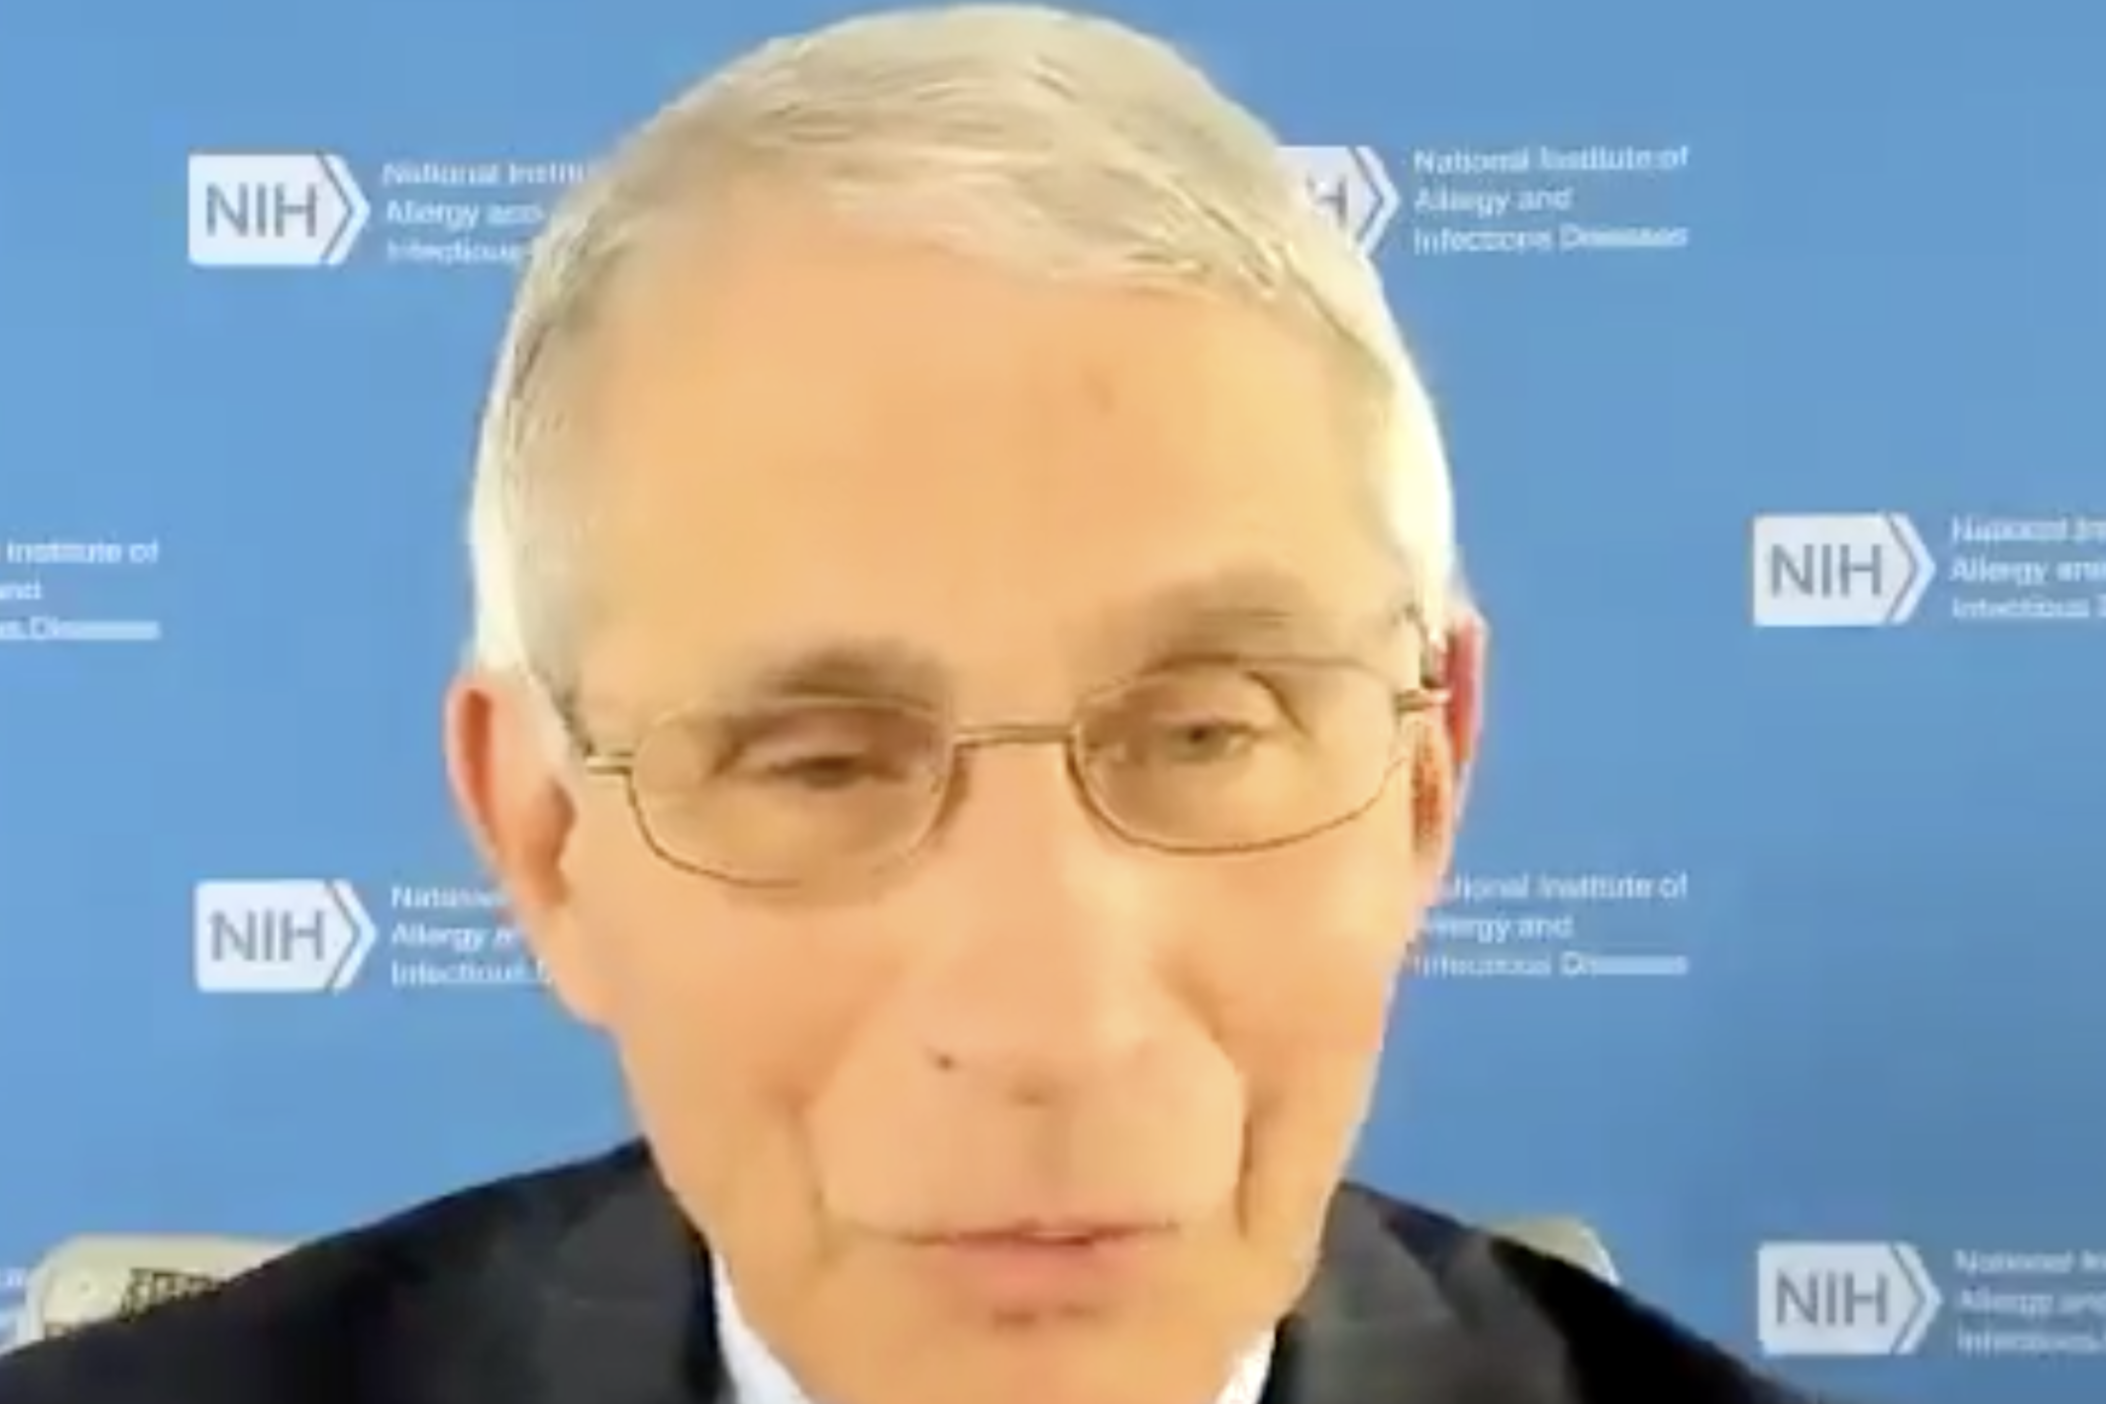 Dr. Anthony Fauci speaks during the Emory University-hosted webinar Thursday afternoon.